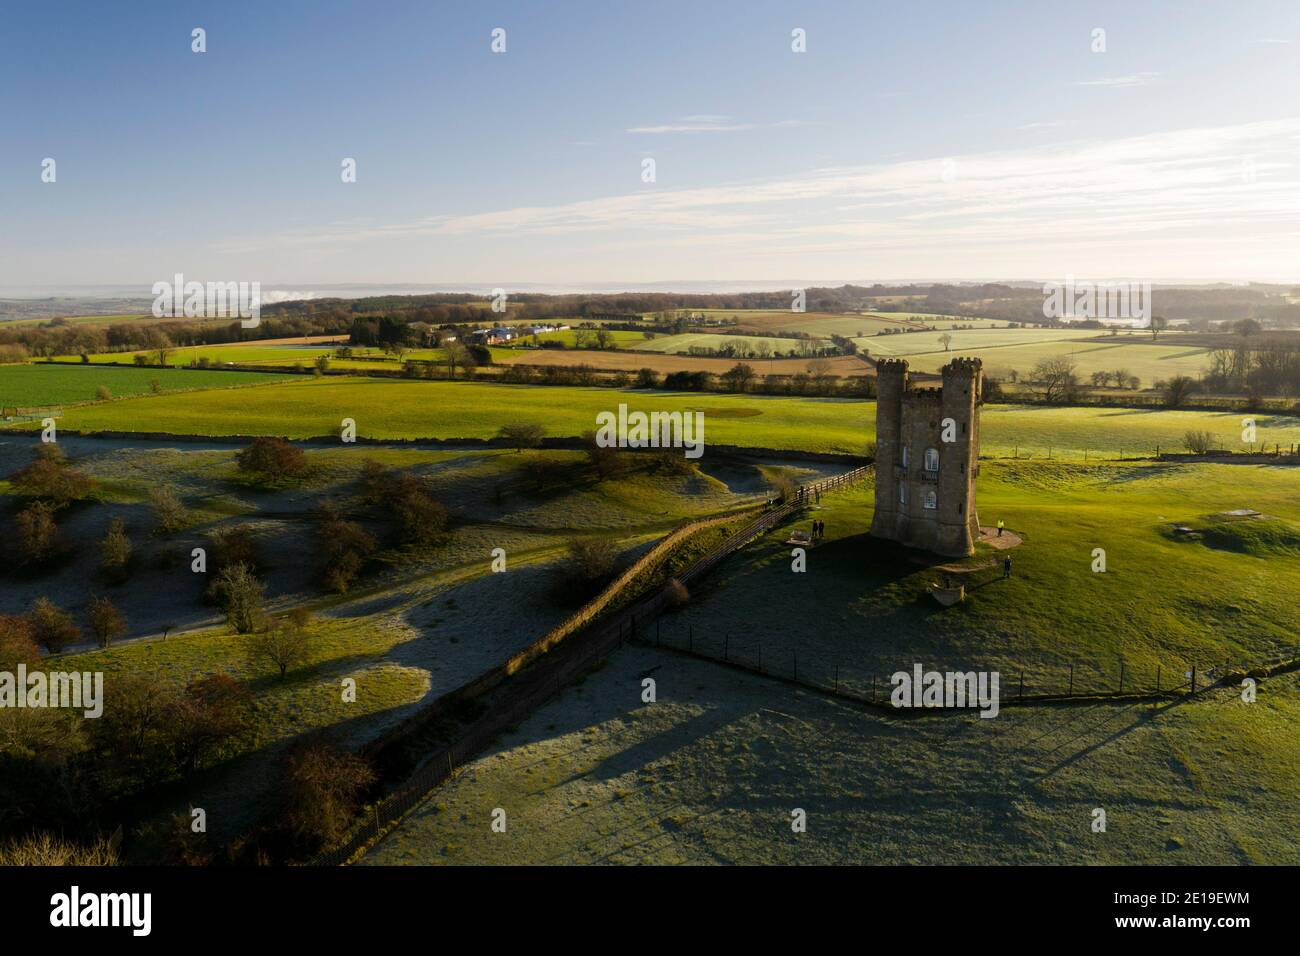 Aerial drone photo of Broadway Tower, a famous old building landmark in The Cotswolds Hills, iconic English tourist attraction in beautiful British countryside with green fields, Gloucestershire, England, UK Stock Photo